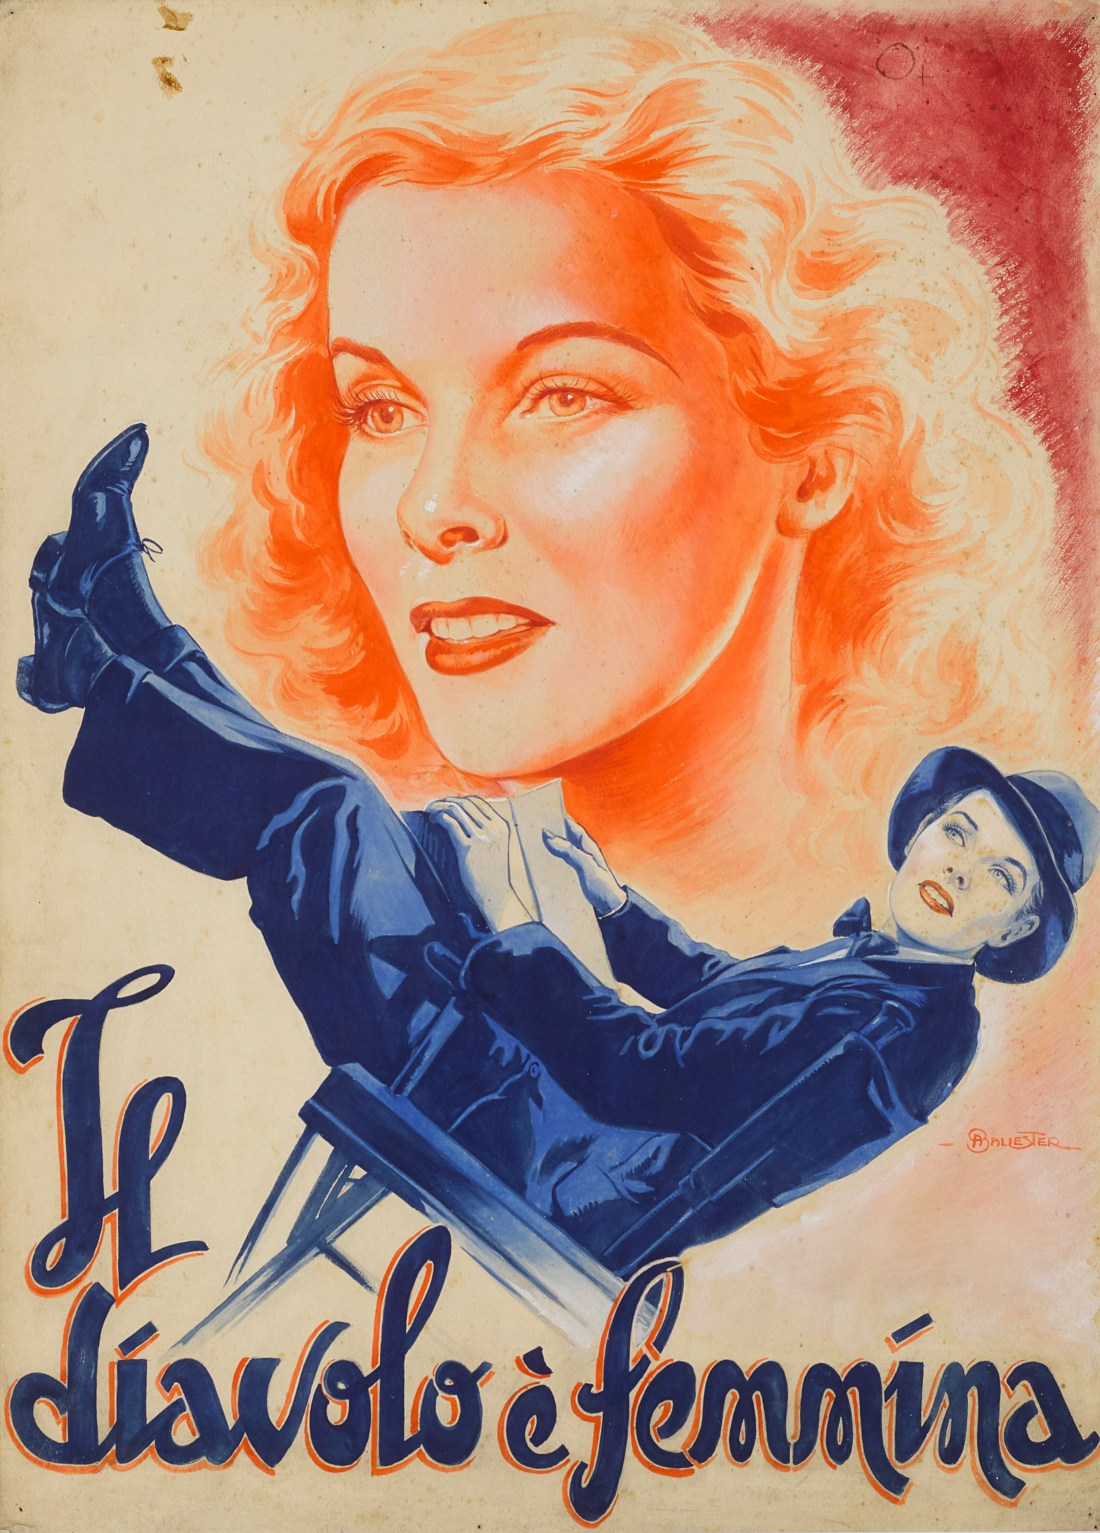 Original gouache and pencil artwork by Anselmo Ballester for a mid-1930s Italian movie poster for Sylvia Scarlett, a 1935 film starring Katharine Hepburn and Cary Grant.